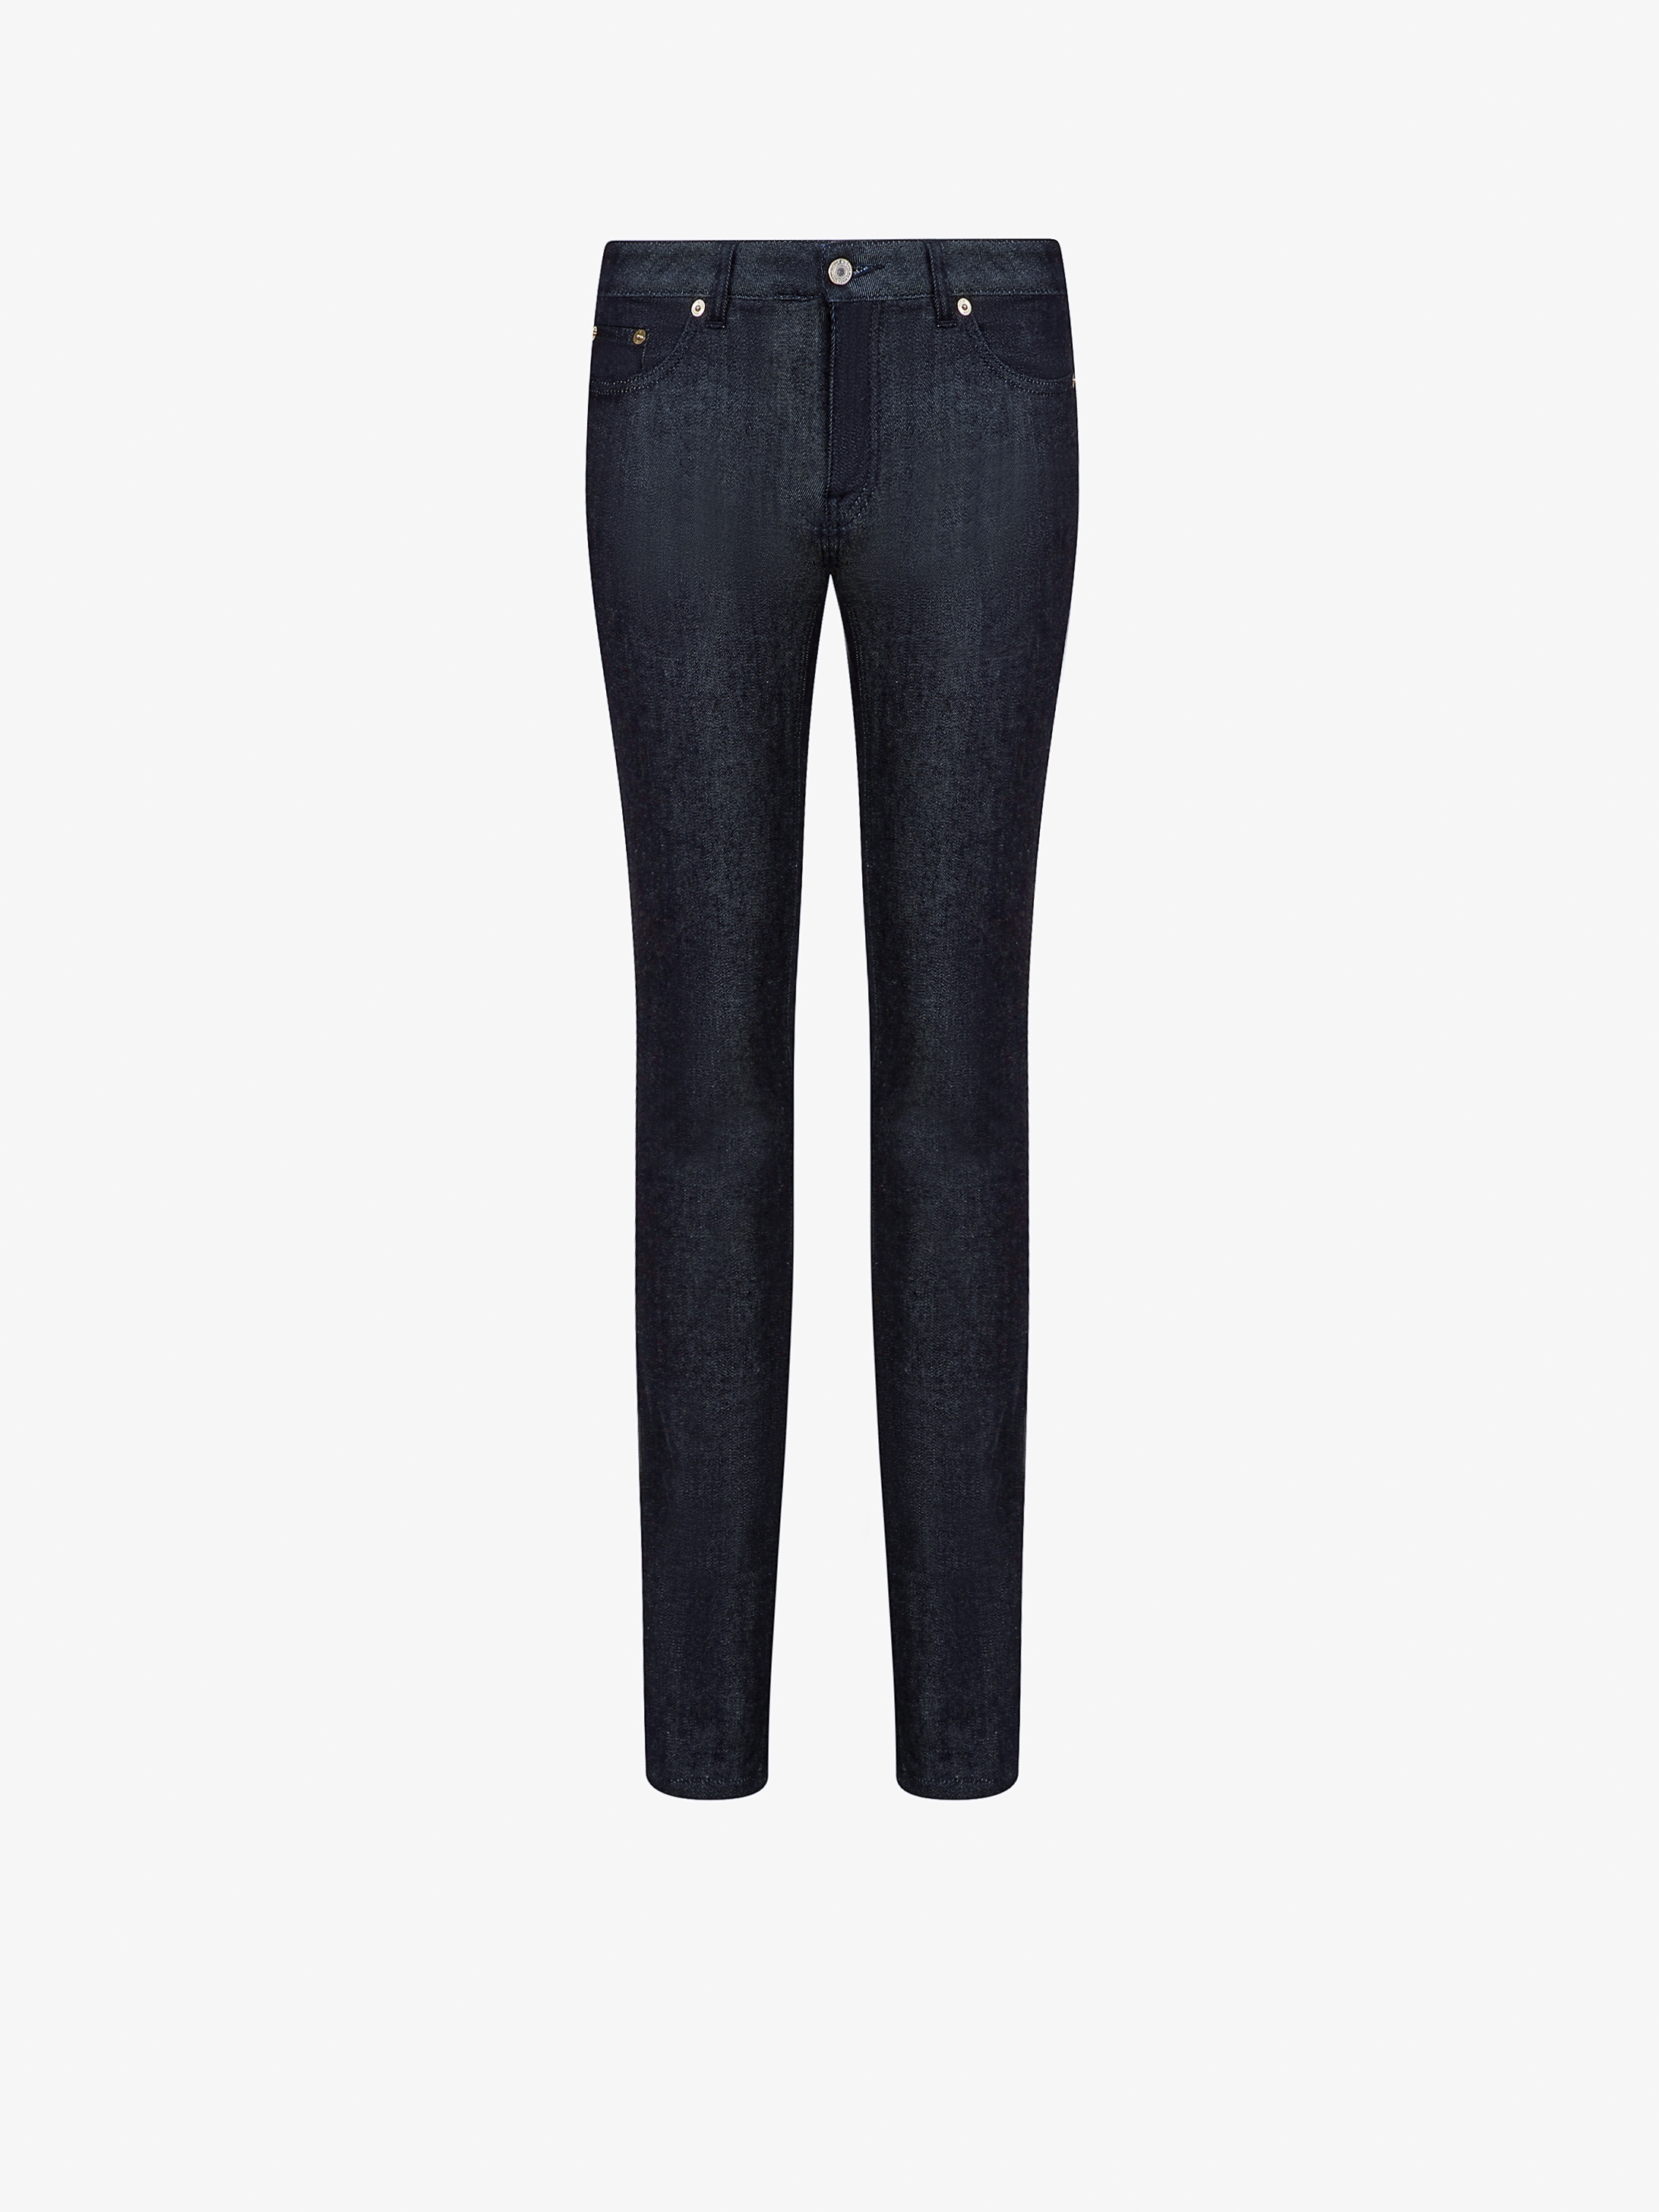 GIVENCHY PARIS skinny jeans